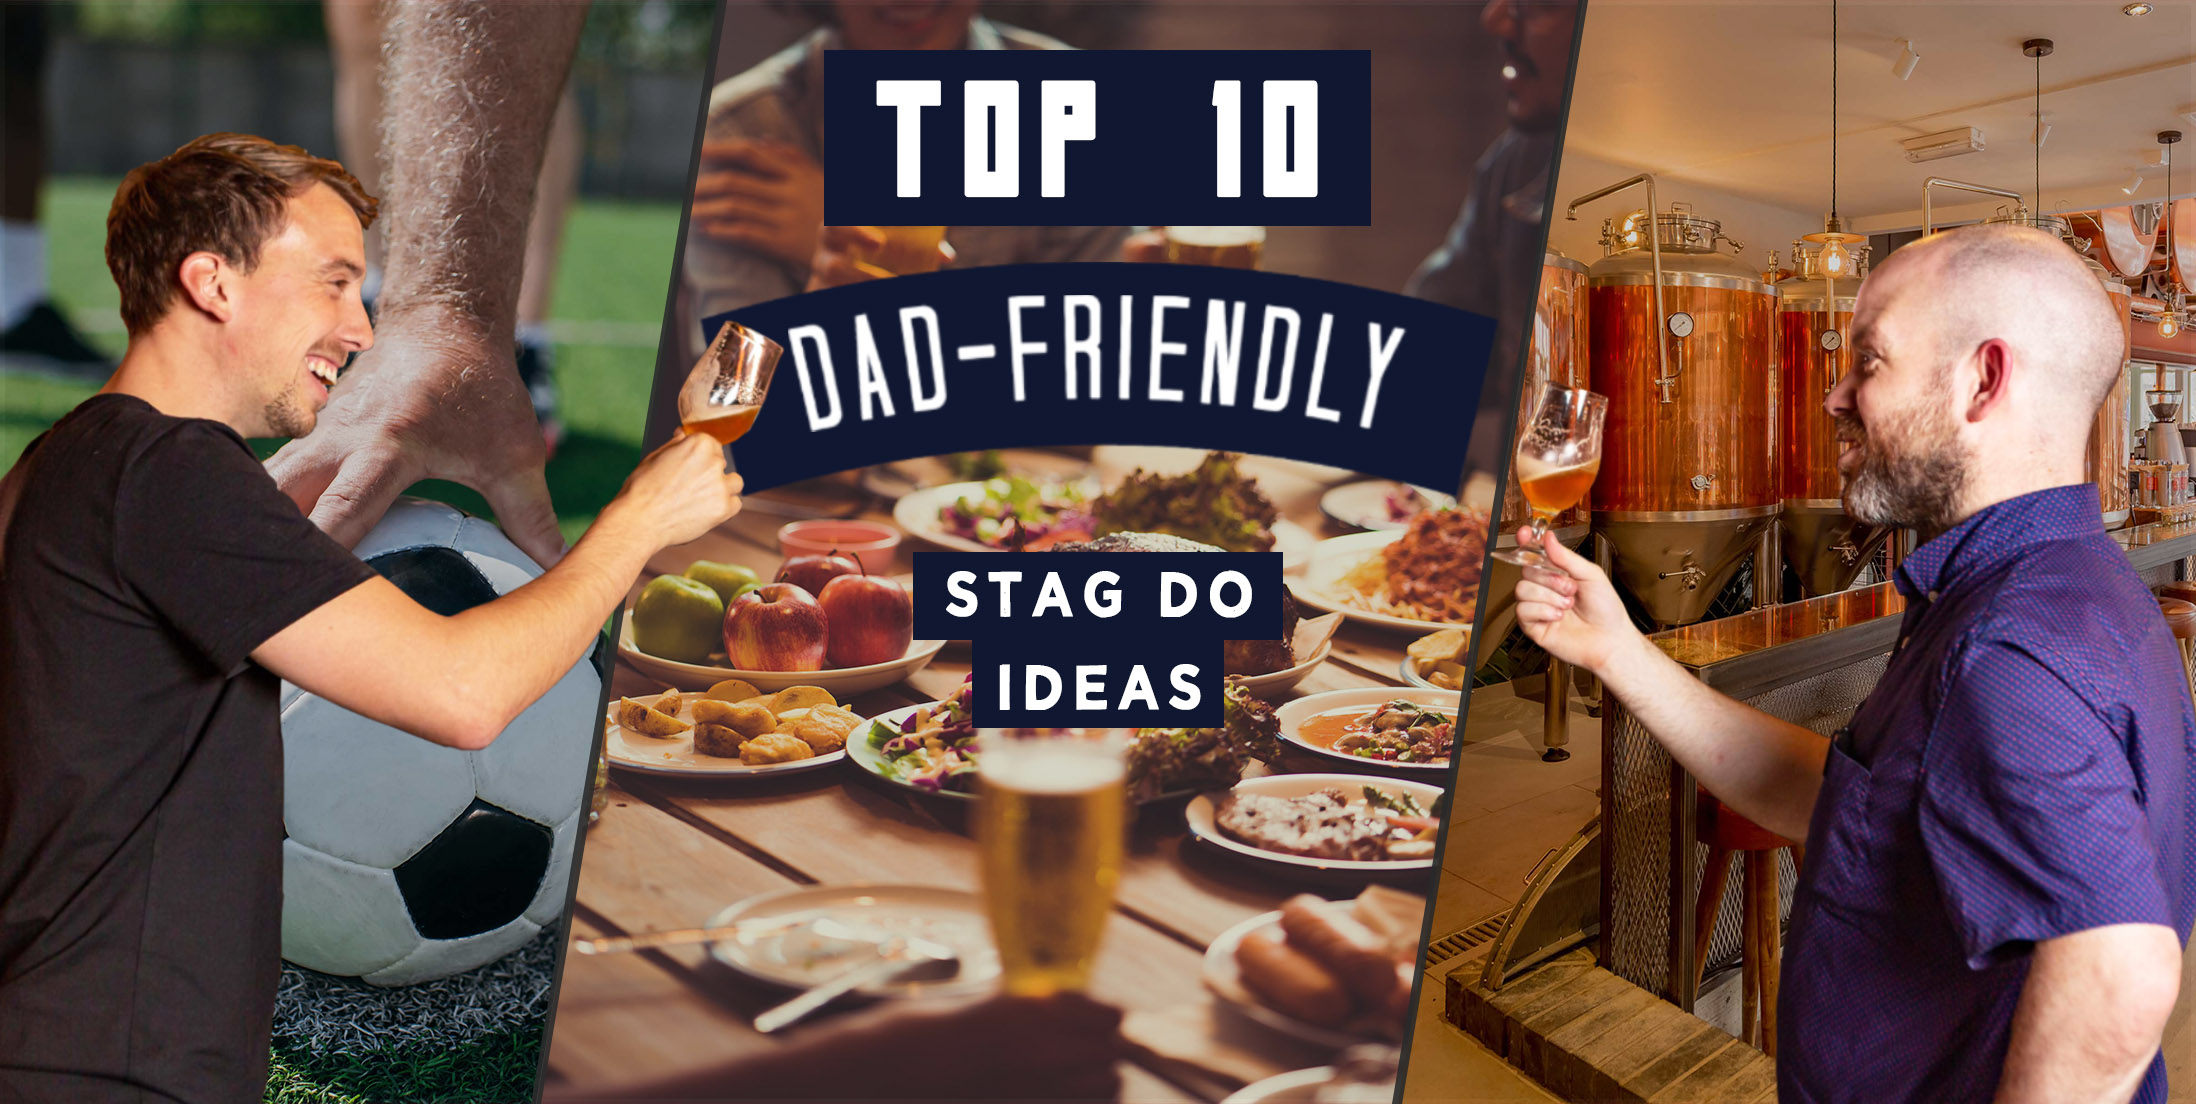 Top 10 Dad Friendly Stag Do Ideas